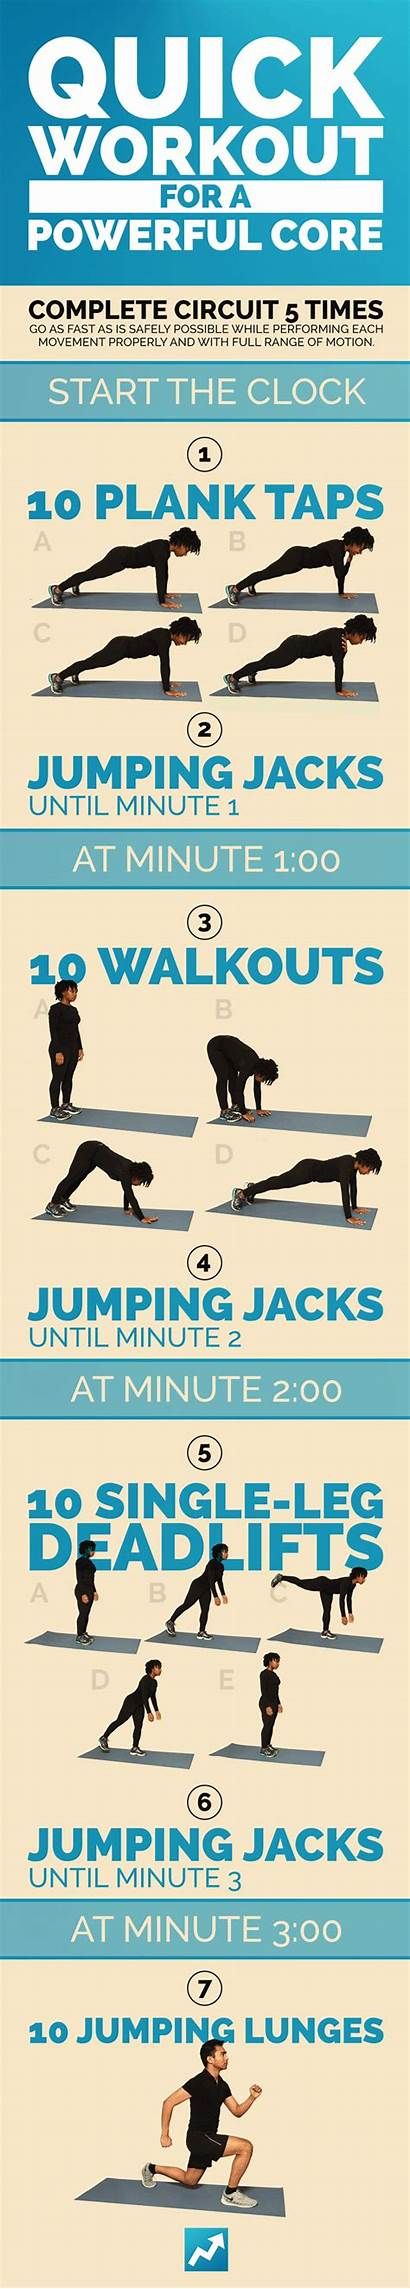 Workouts Exercises Workout Quick Core Equipment Exercise